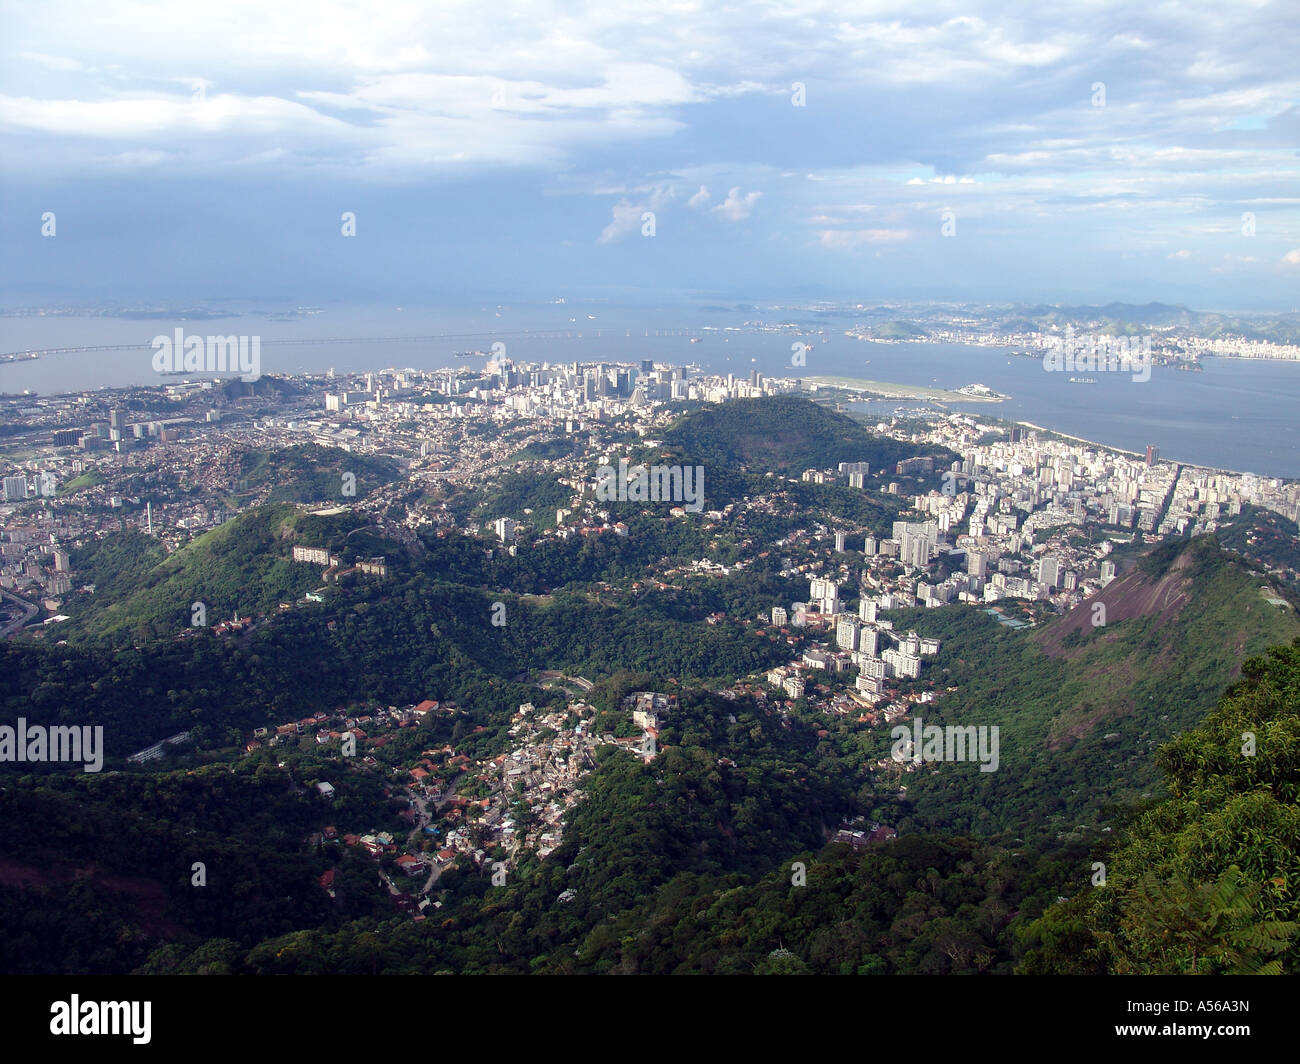 Painet iy8154 brazil panorama rio janeiro corcovado peak site statue christ redeemer 2005 country developing nation Stock Photo